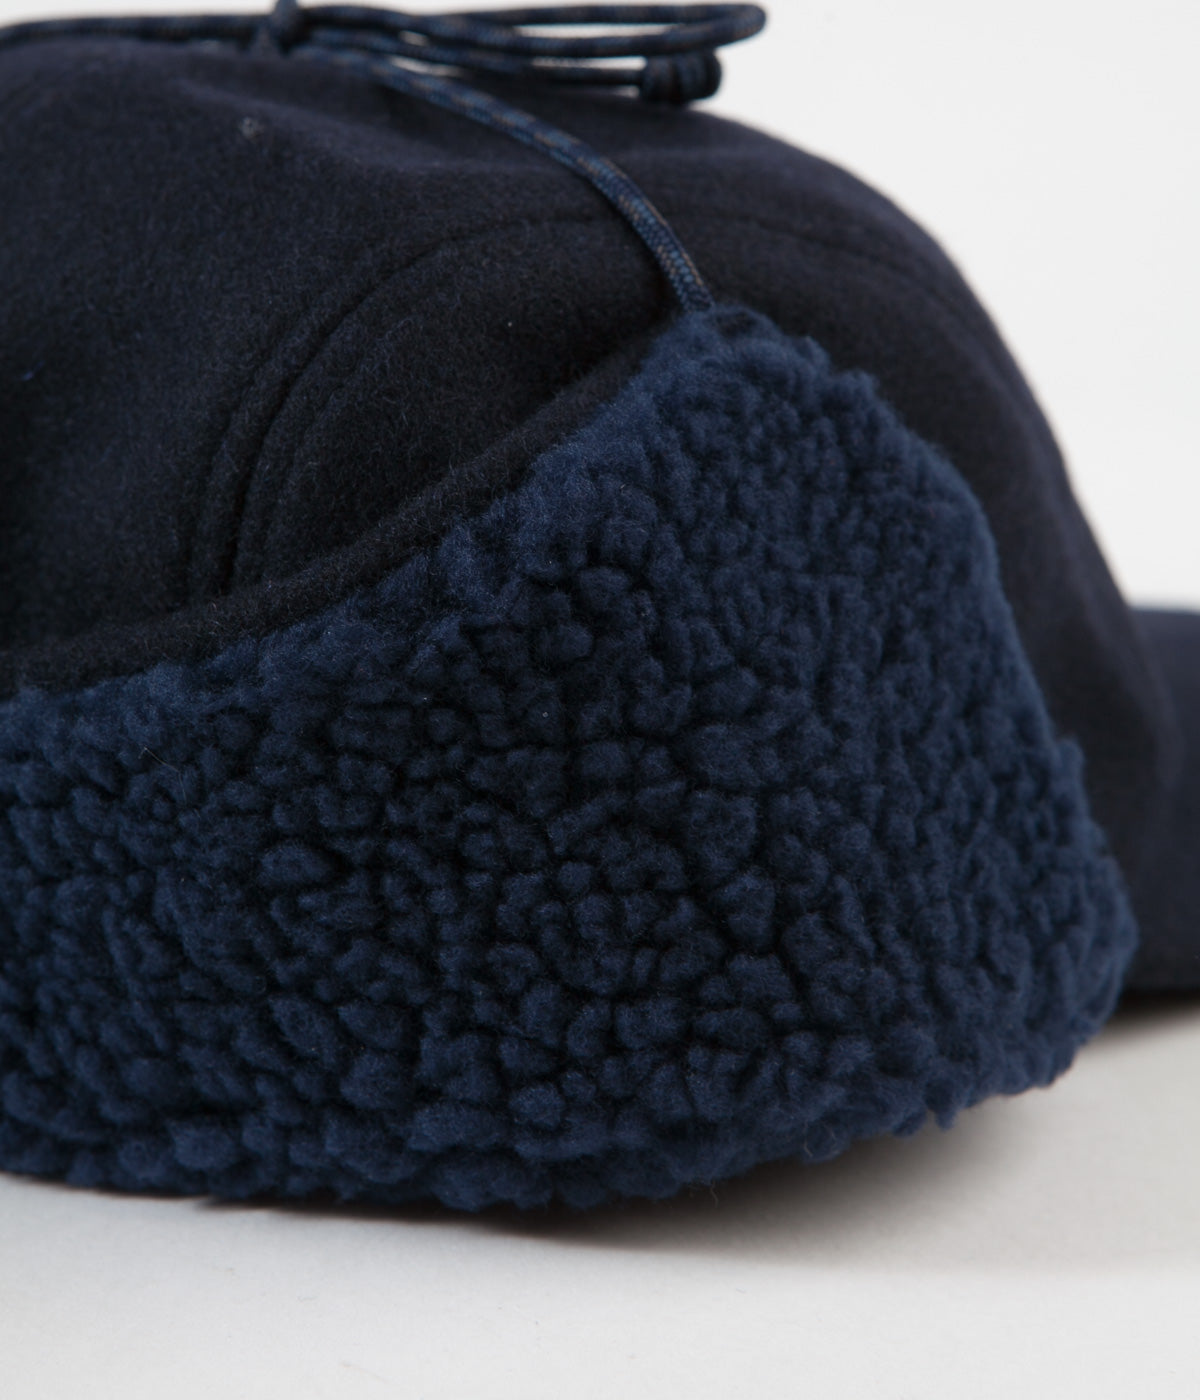 ced731f4fc5 Patagonia Recycled Wool Ear Flap Cap - Classic Navy ...